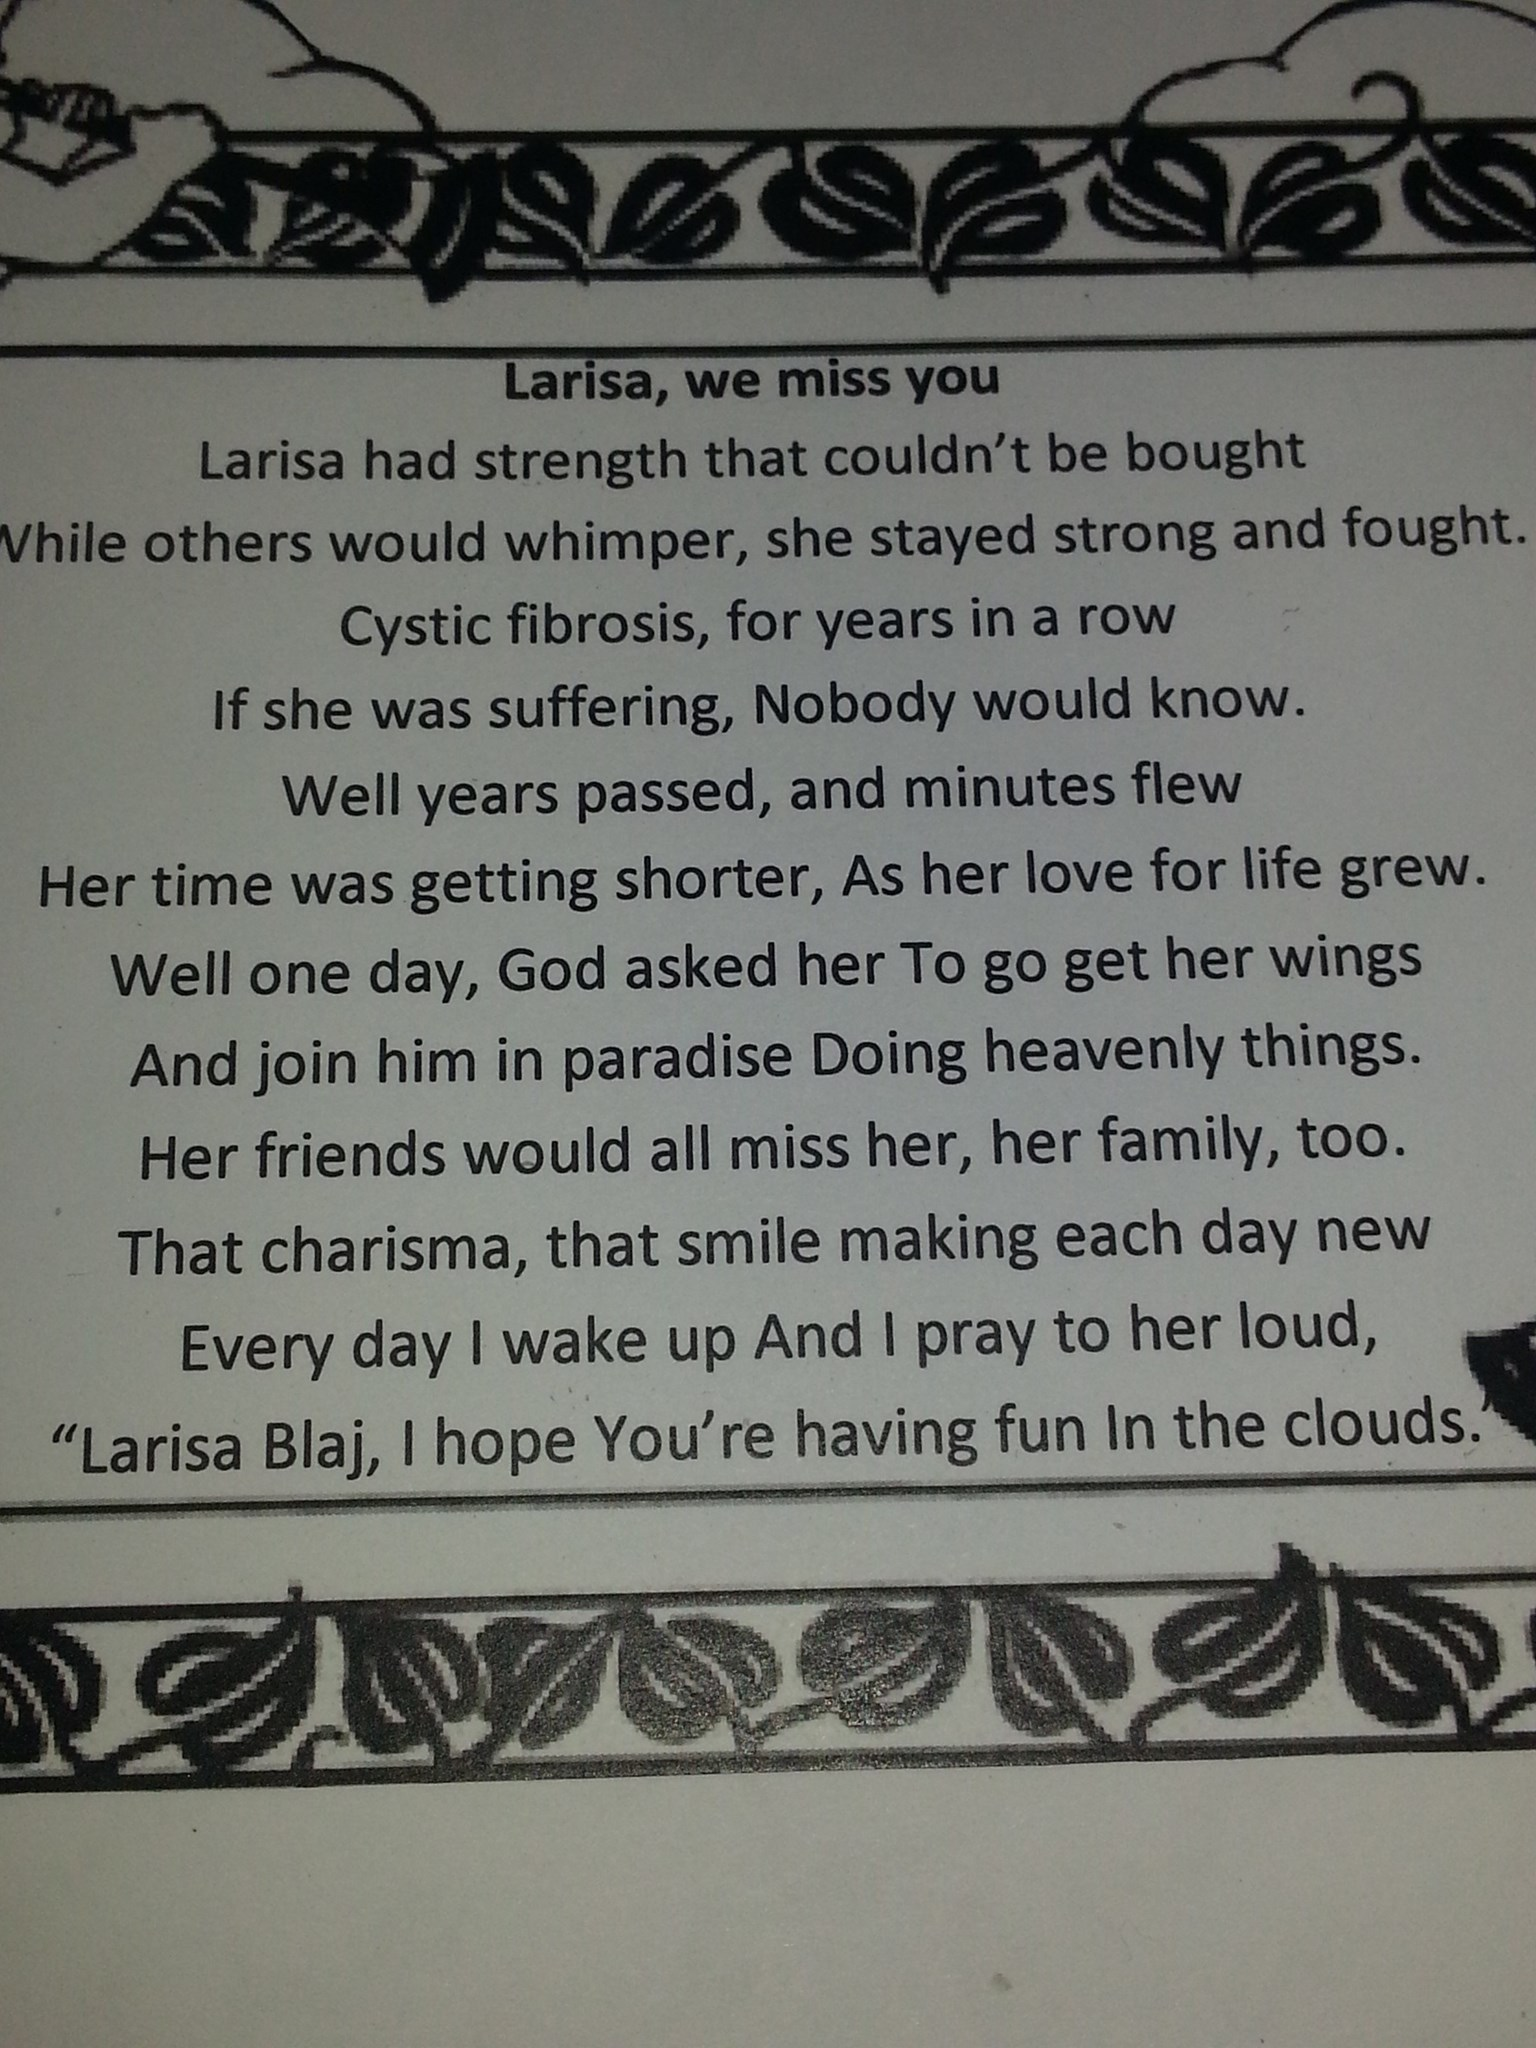 one of Larisa's friends poem for her